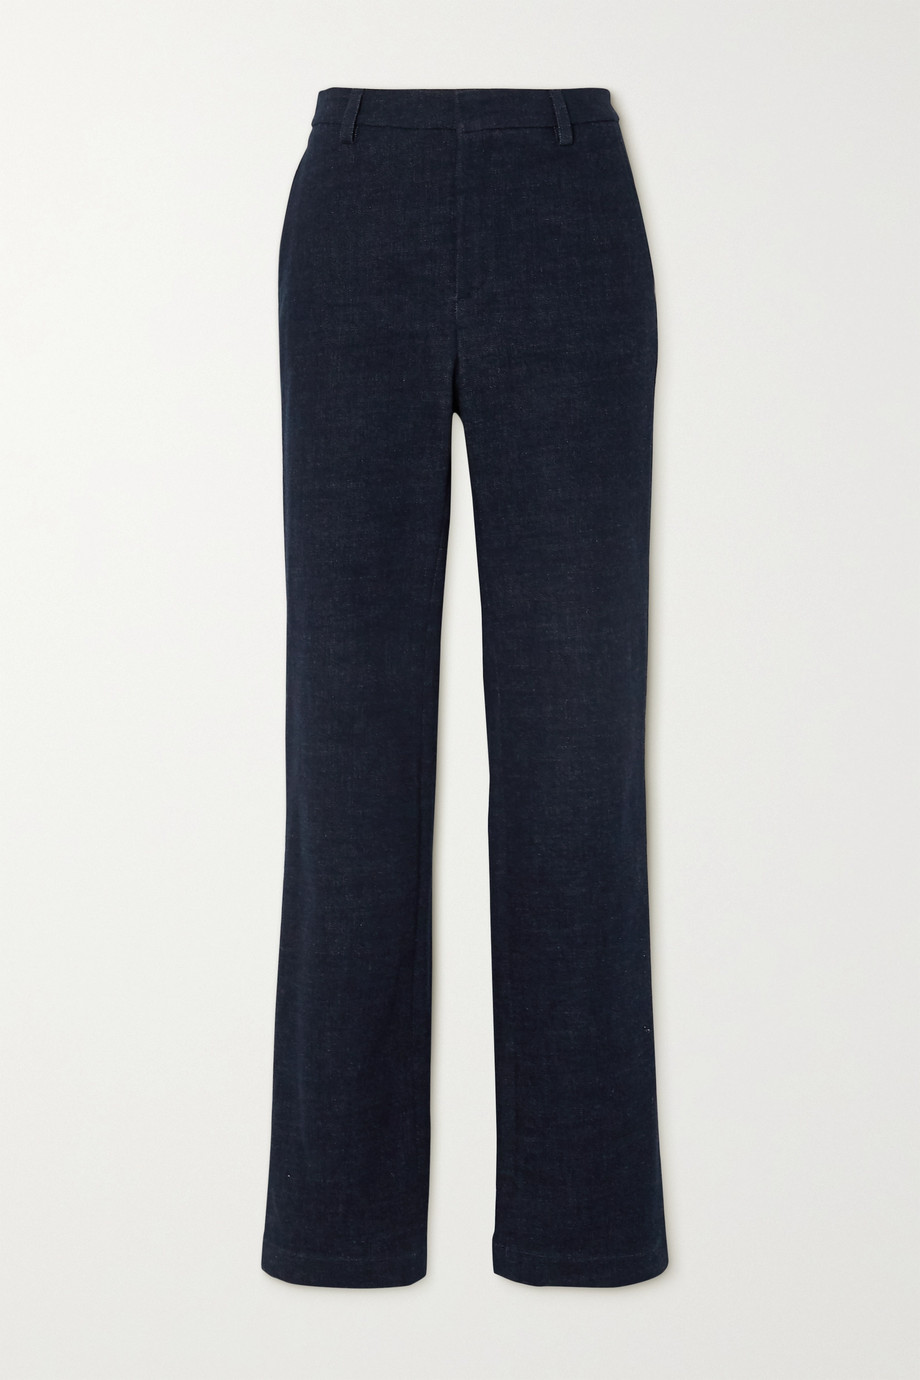 Loro Piana Denim straight-leg pants